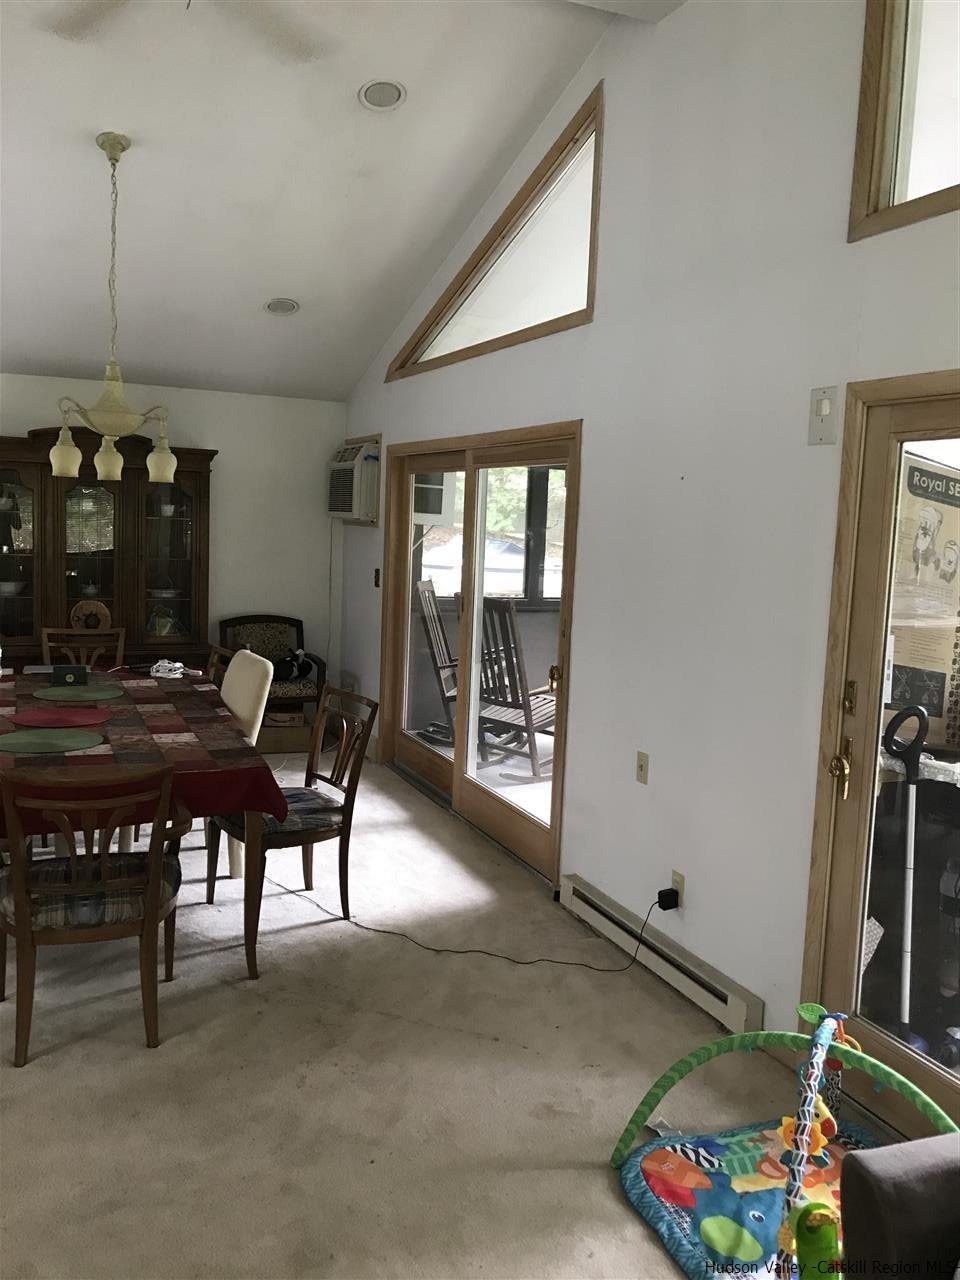 Additional photo for property listing at 84 Westwood Avenue 84 Westwood Avenue Ellenville, New York 12428 United States